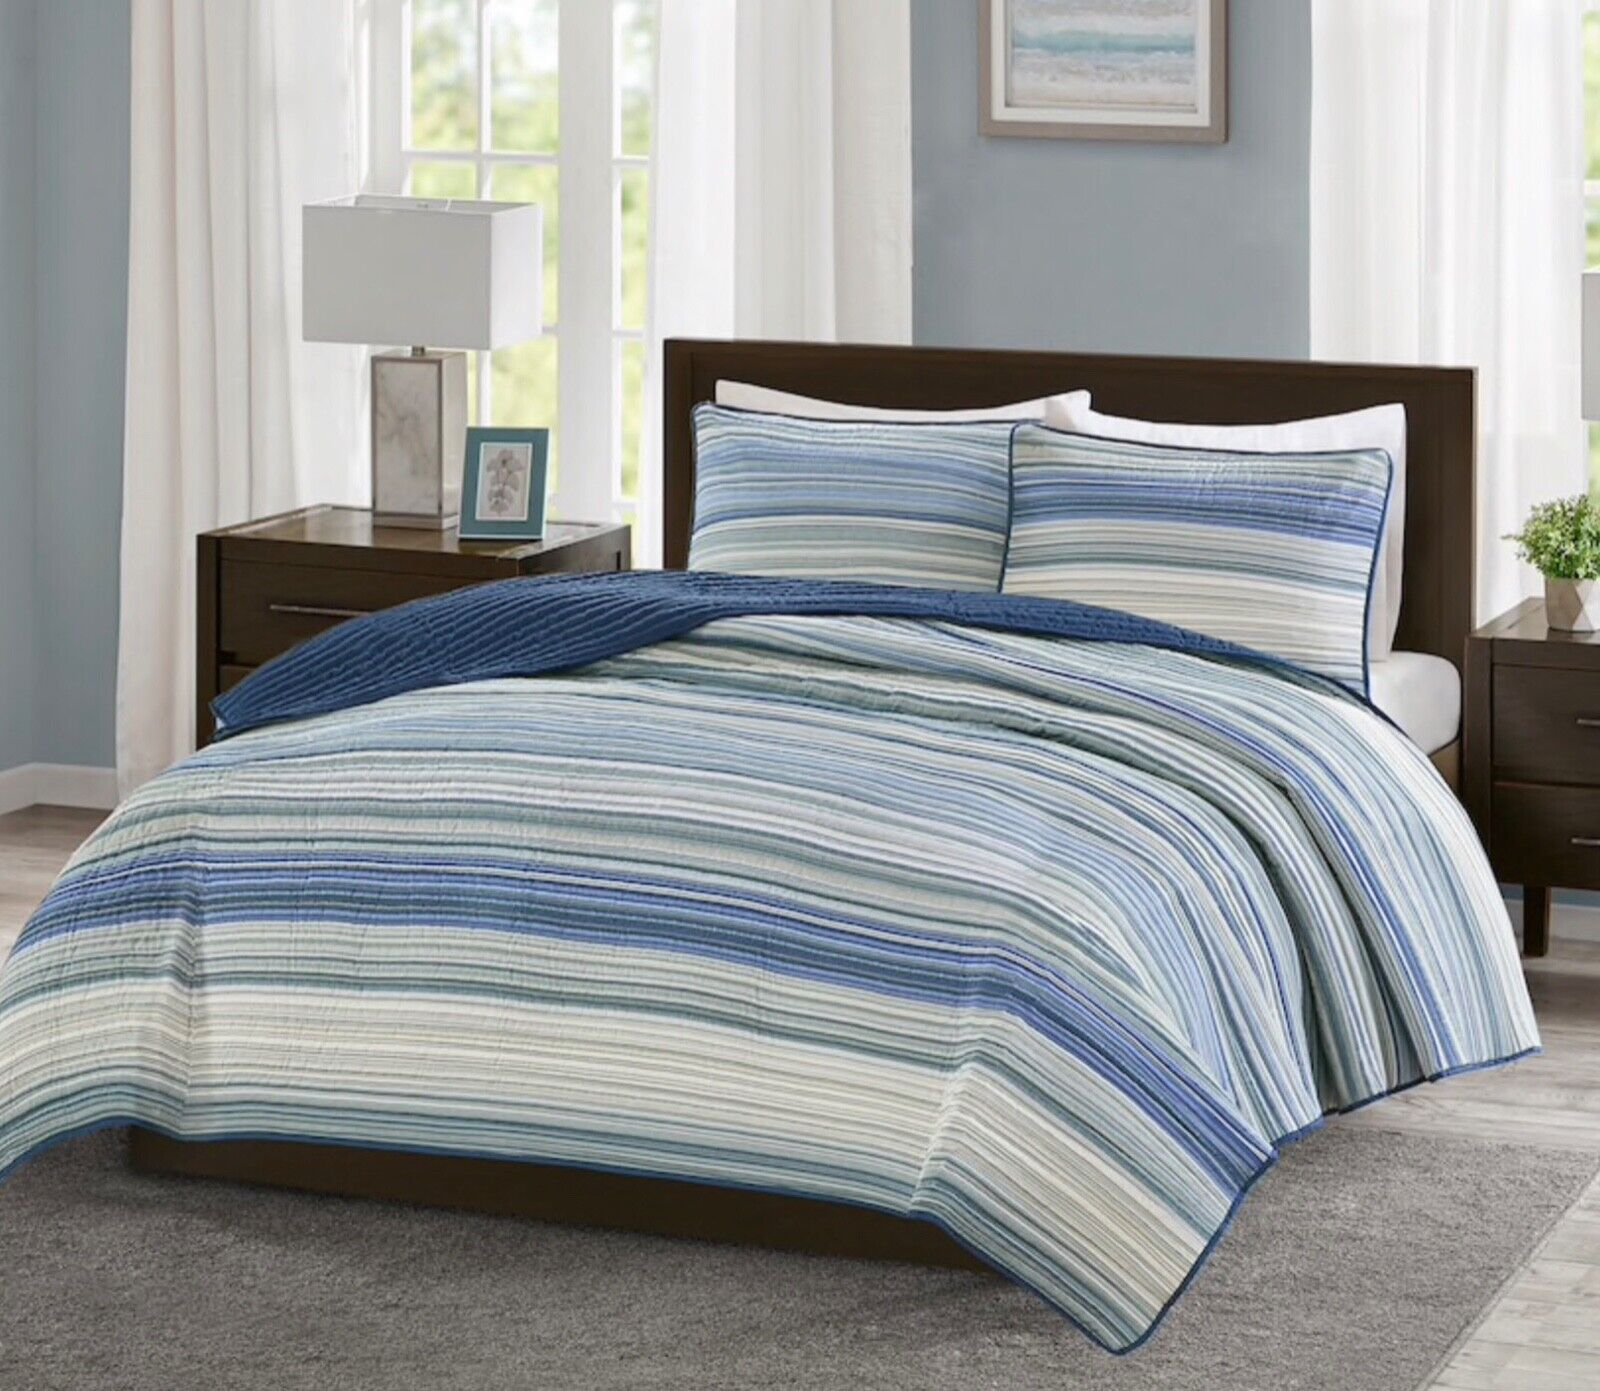 New Madison Park KING Sz 3 pcs Quilt Blanket Bedding Set - B